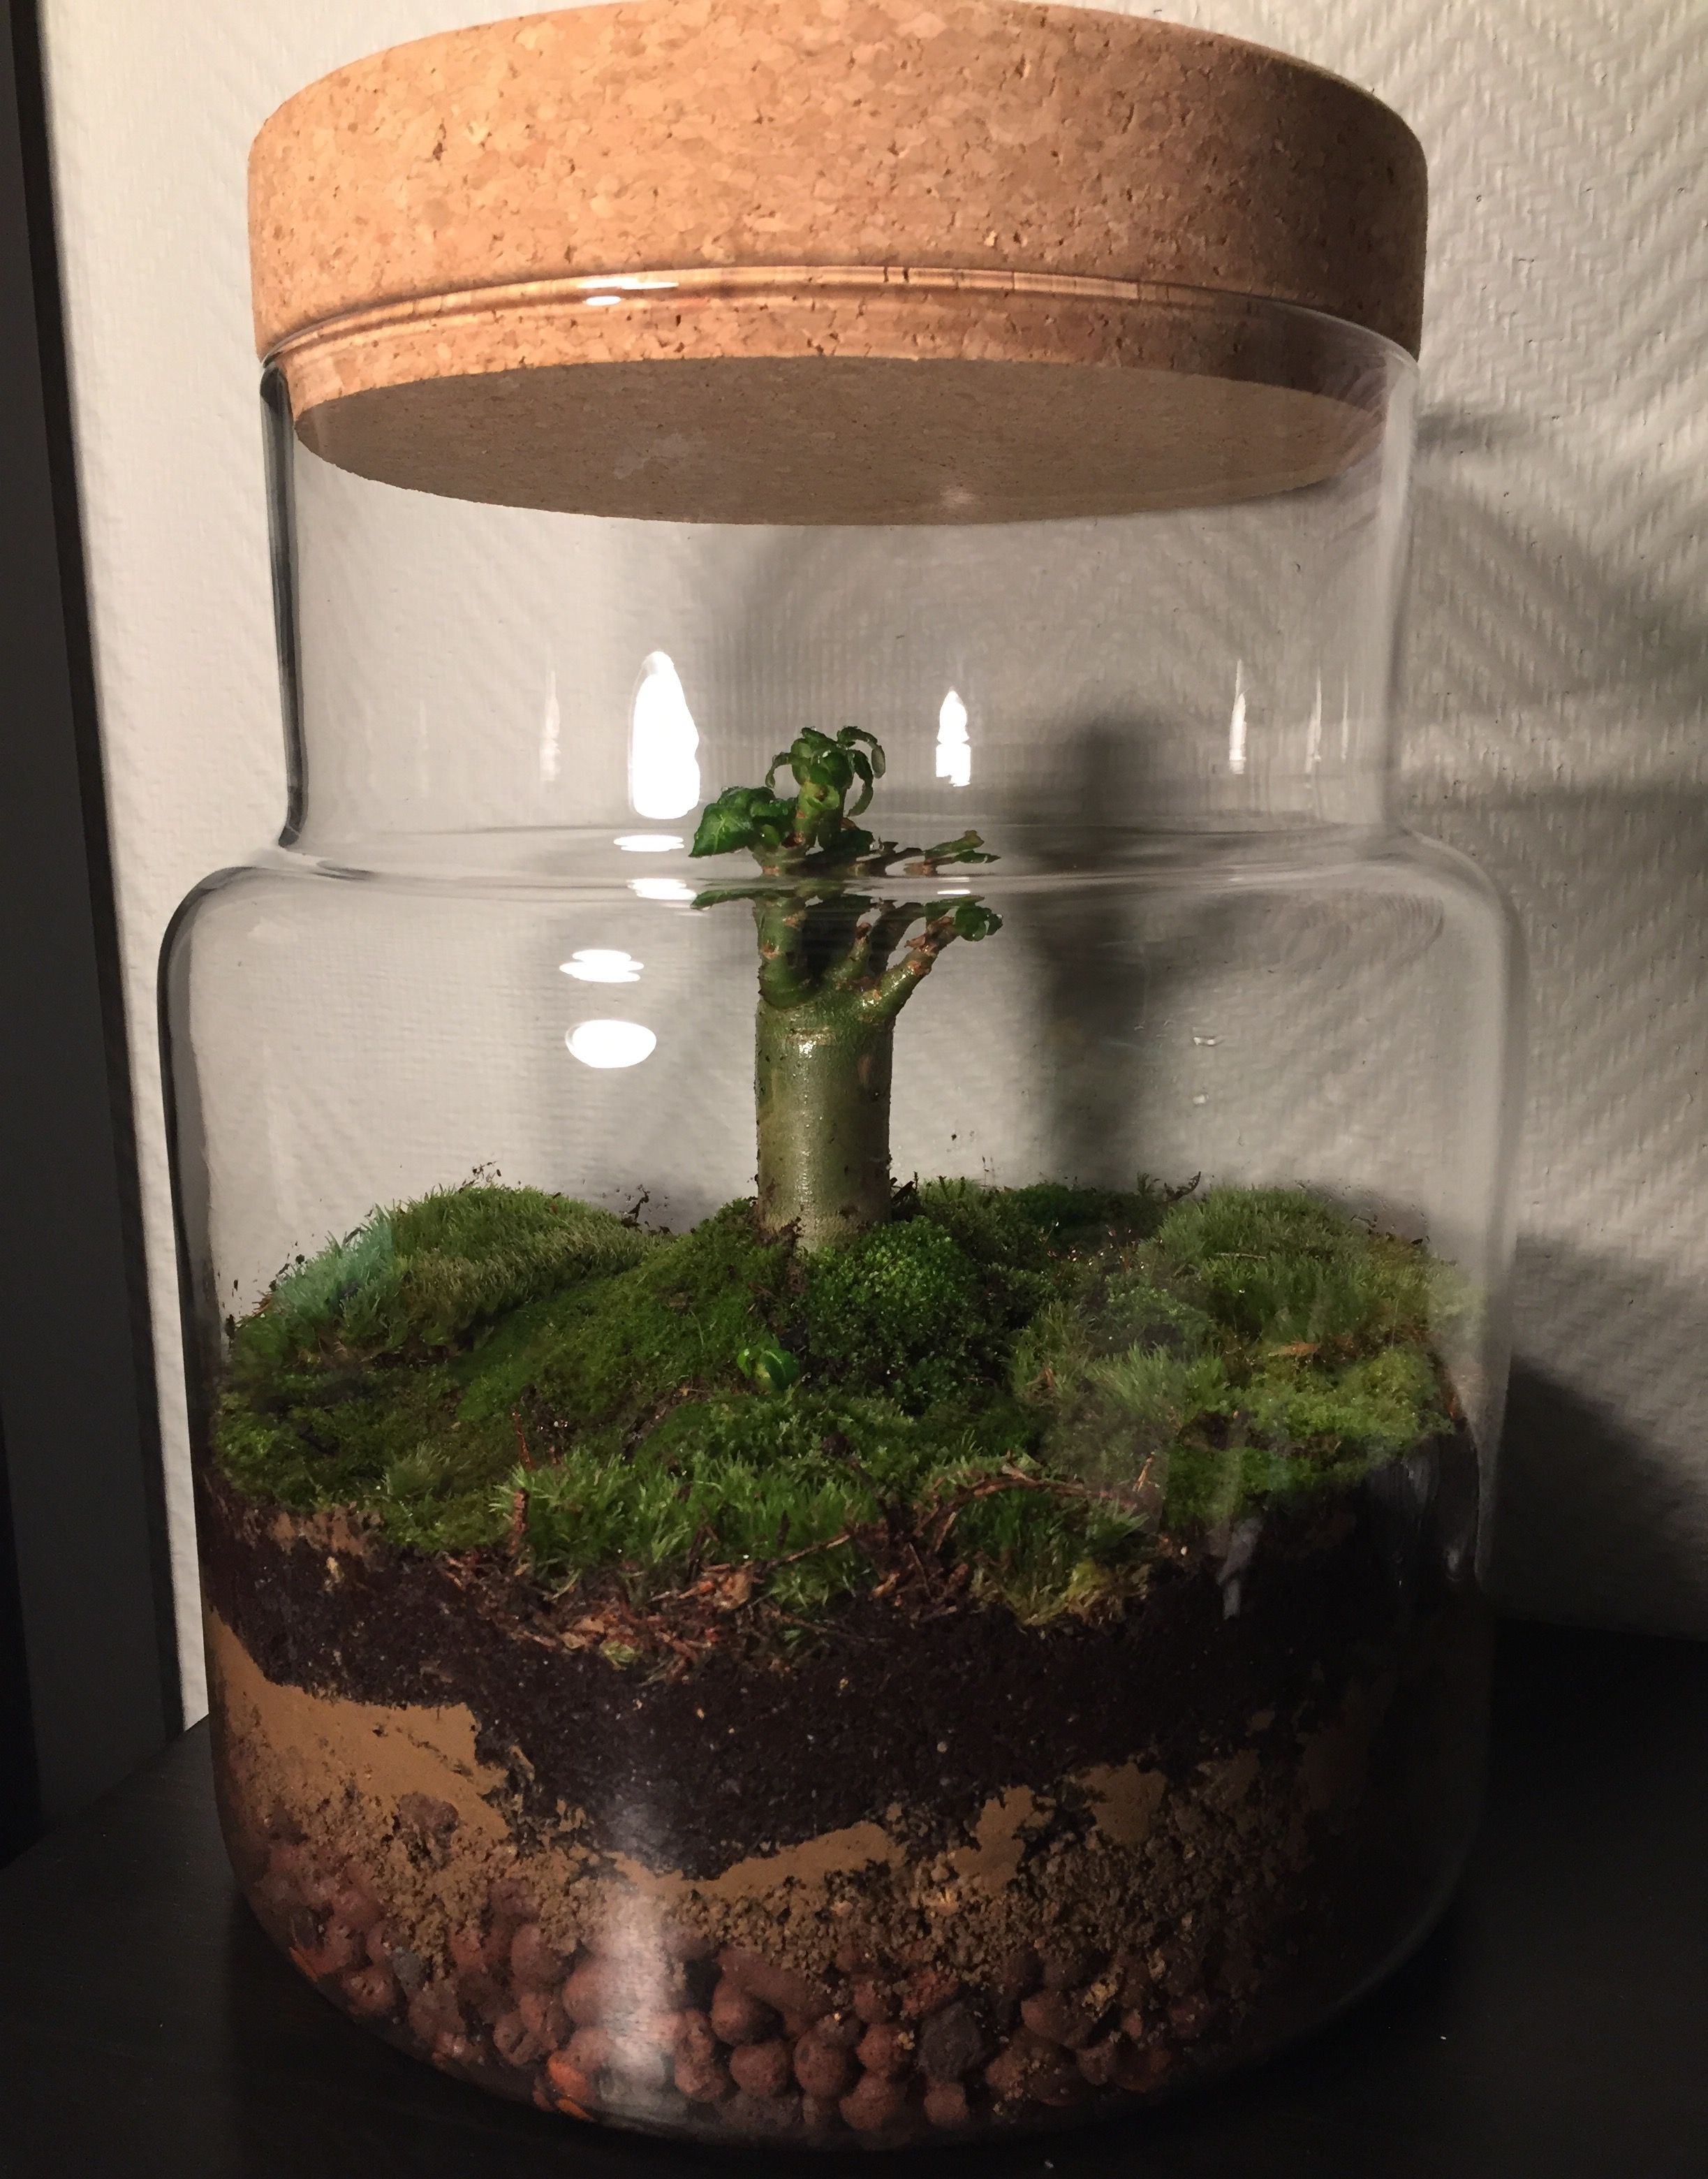 My First Small Ecosystem Adenium Obesum + Moss + Glass